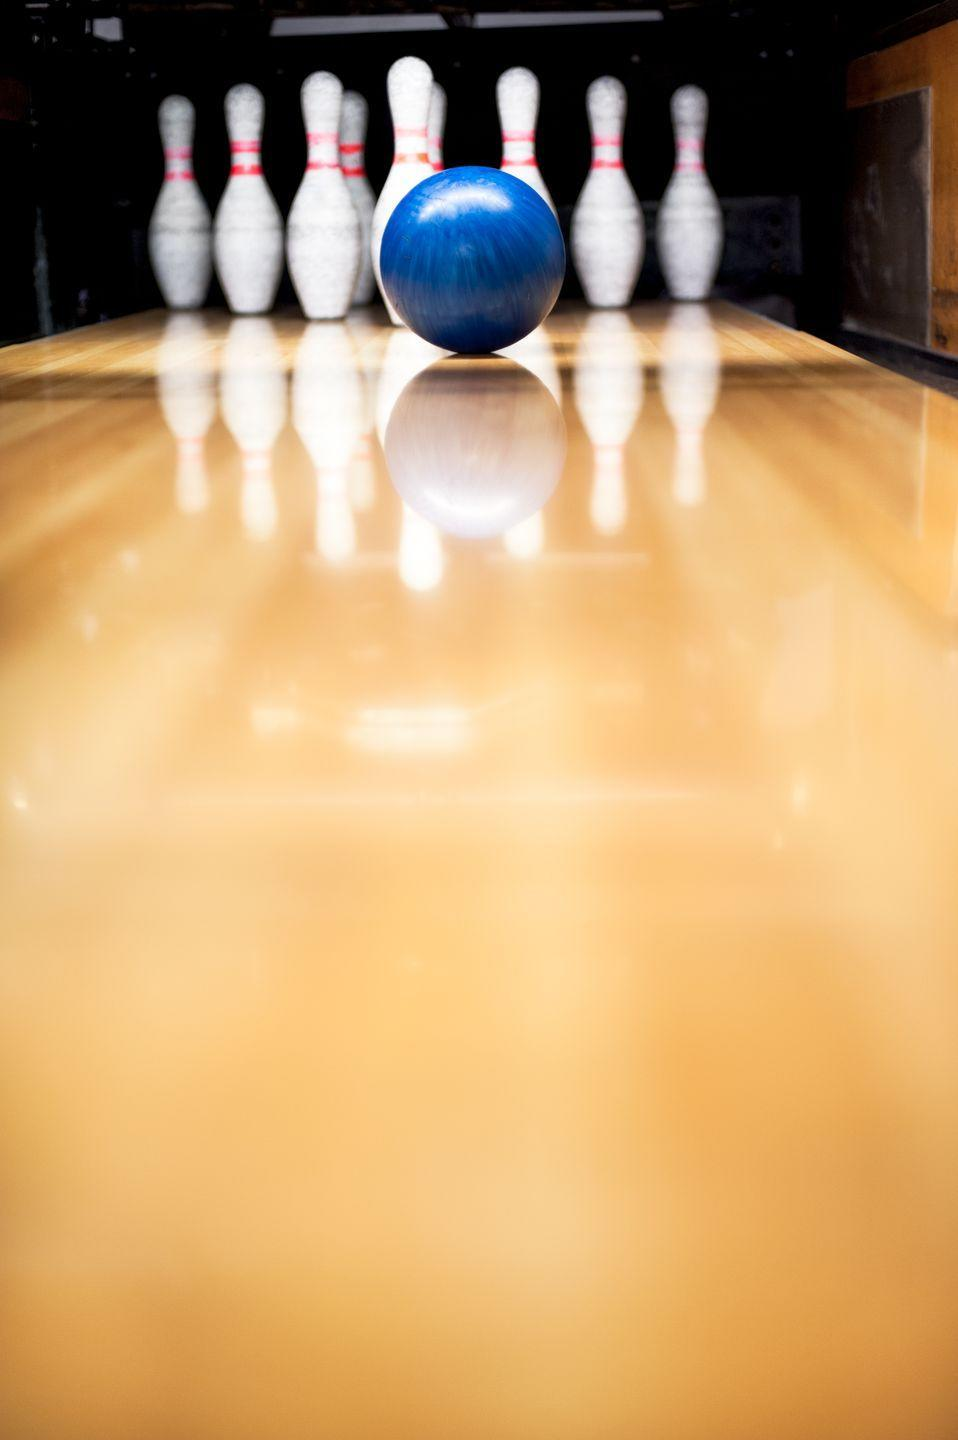 "<p>Last but not least, bowling. Come on, we had to. After all, what's more fun than gathering together with family and friends for a little good-natured competition?</p><p><a class=""link rapid-noclick-resp"" href=""https://go.redirectingat.com?id=74968X1596630&url=https%3A%2F%2Fwww.walmart.com%2Fbrowse%2Fsports-outdoors%2Fbowling-shirts%2F4125_4161_1775901_8261653&sref=https%3A%2F%2Fwww.thepioneerwoman.com%2Fhome-lifestyle%2Fentertaining%2Fg34192298%2F50th-birthday-party-ideas%2F"" rel=""nofollow noopener"" target=""_blank"" data-ylk=""slk:SHOP BOWLING SHIRTS"">SHOP BOWLING SHIRTS</a></p>"